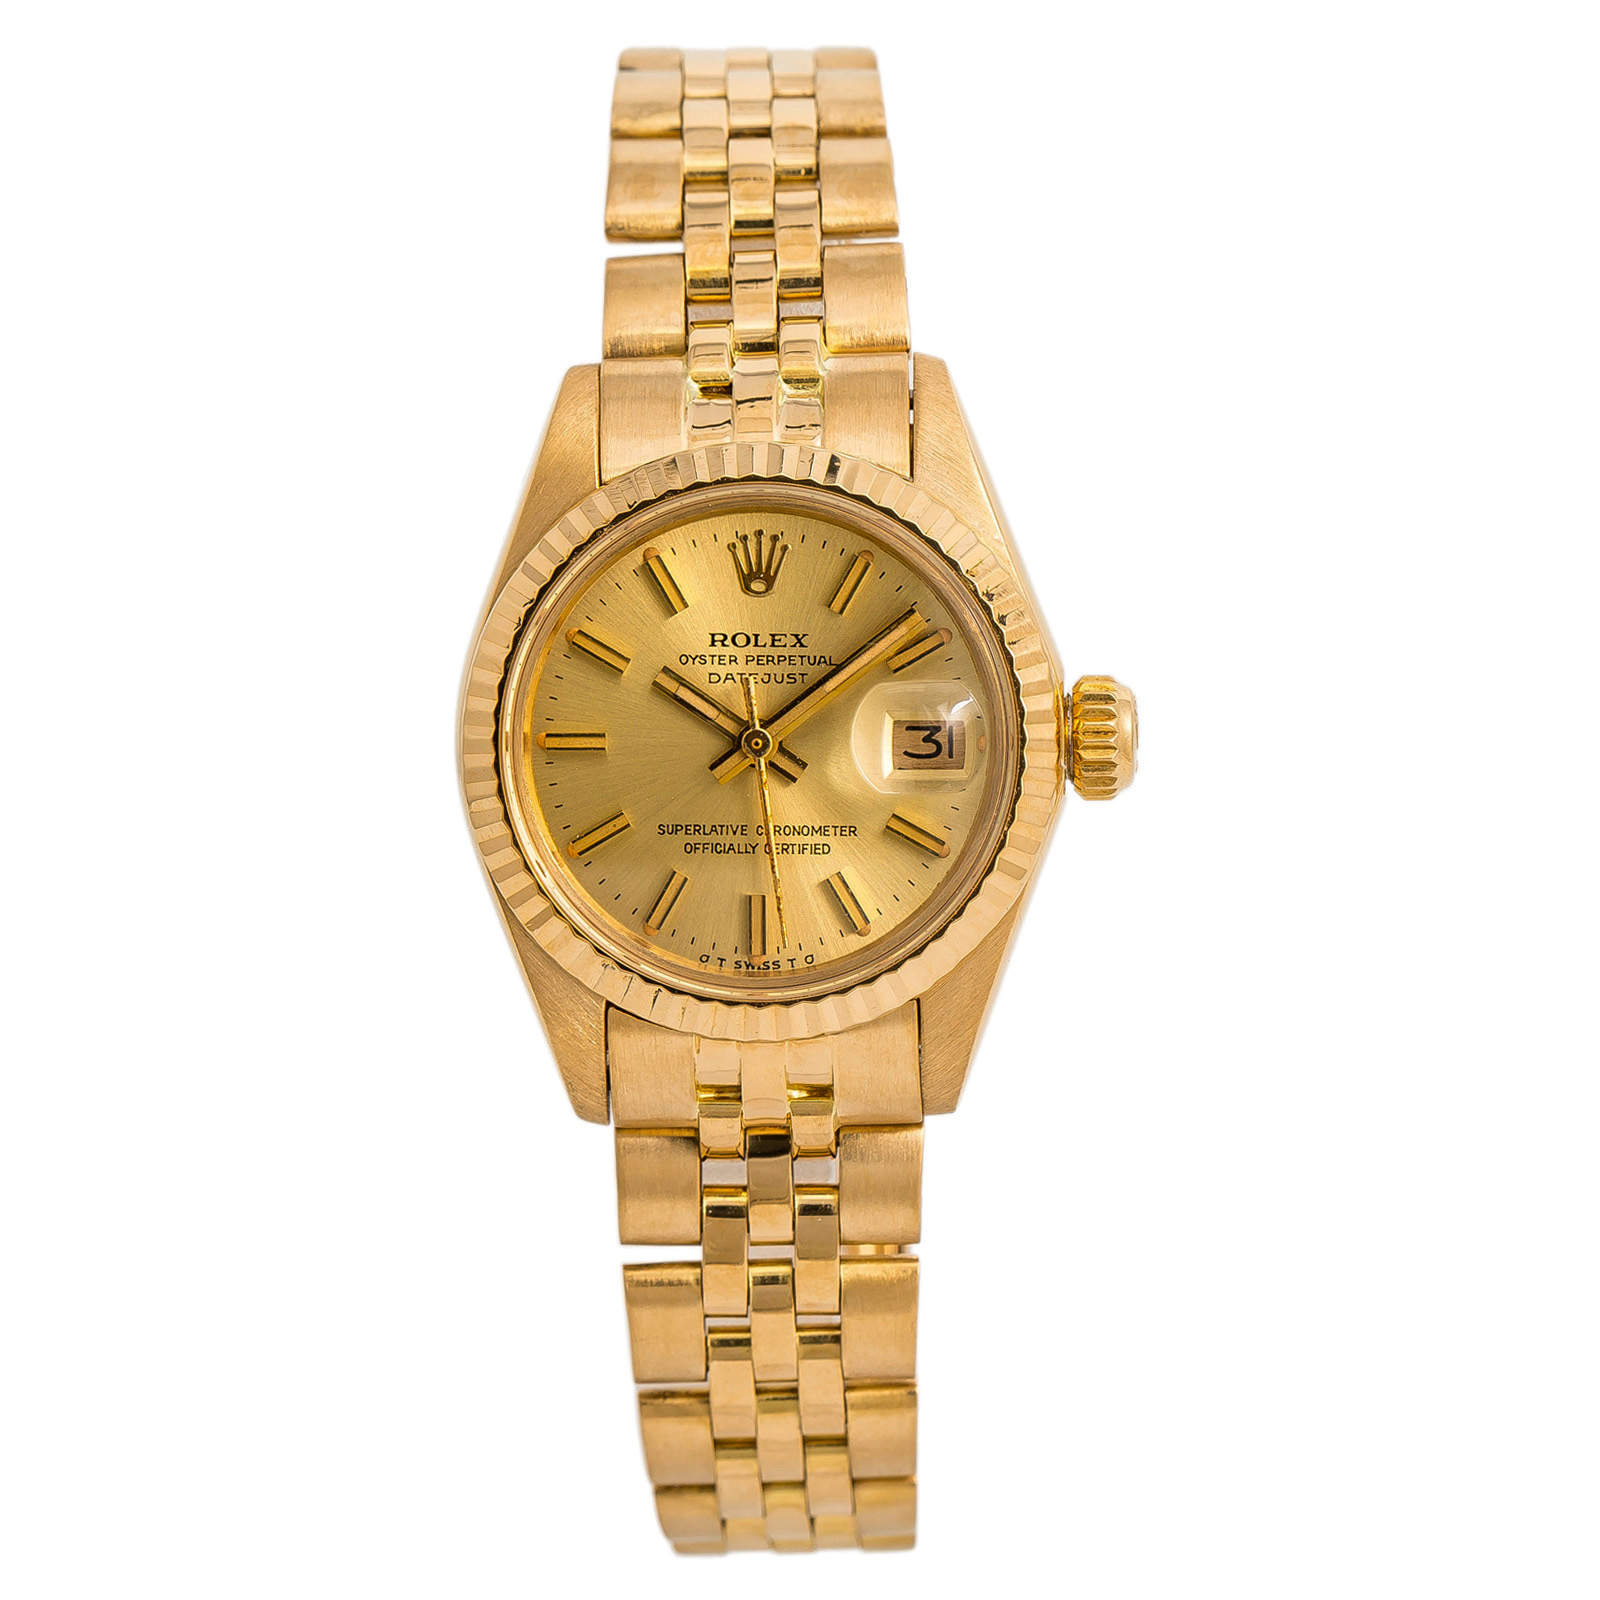 72e35bc9b71 Details about Rolex Datejust 6917 Jubilee Womens Automatic Vintage Watch  18K Yellow Gold 26mm